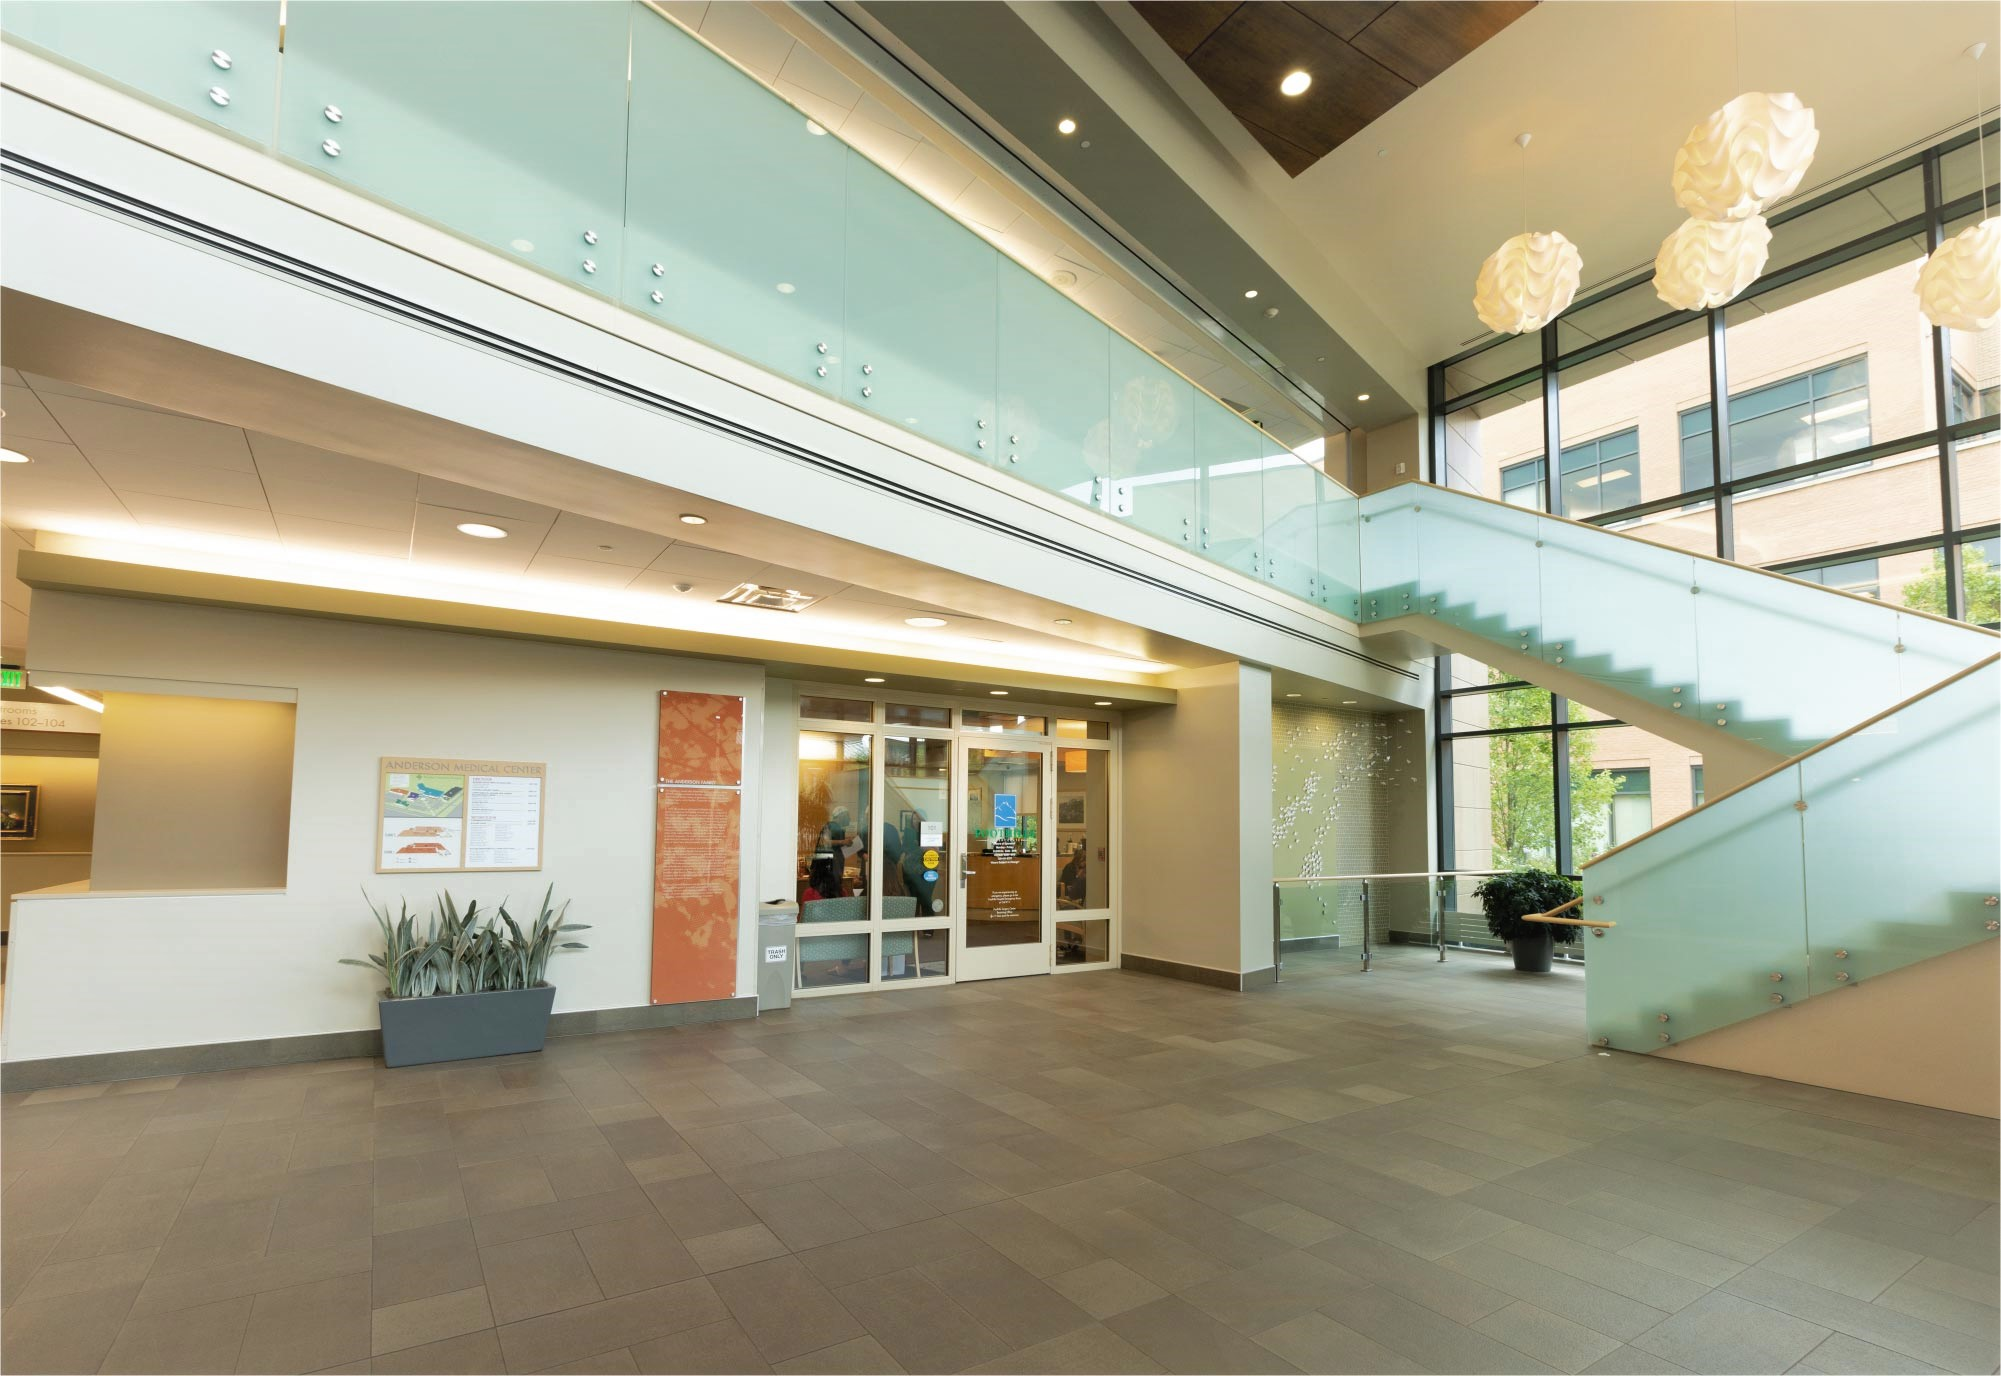 Interior lobby image of Foothills Surgery Center